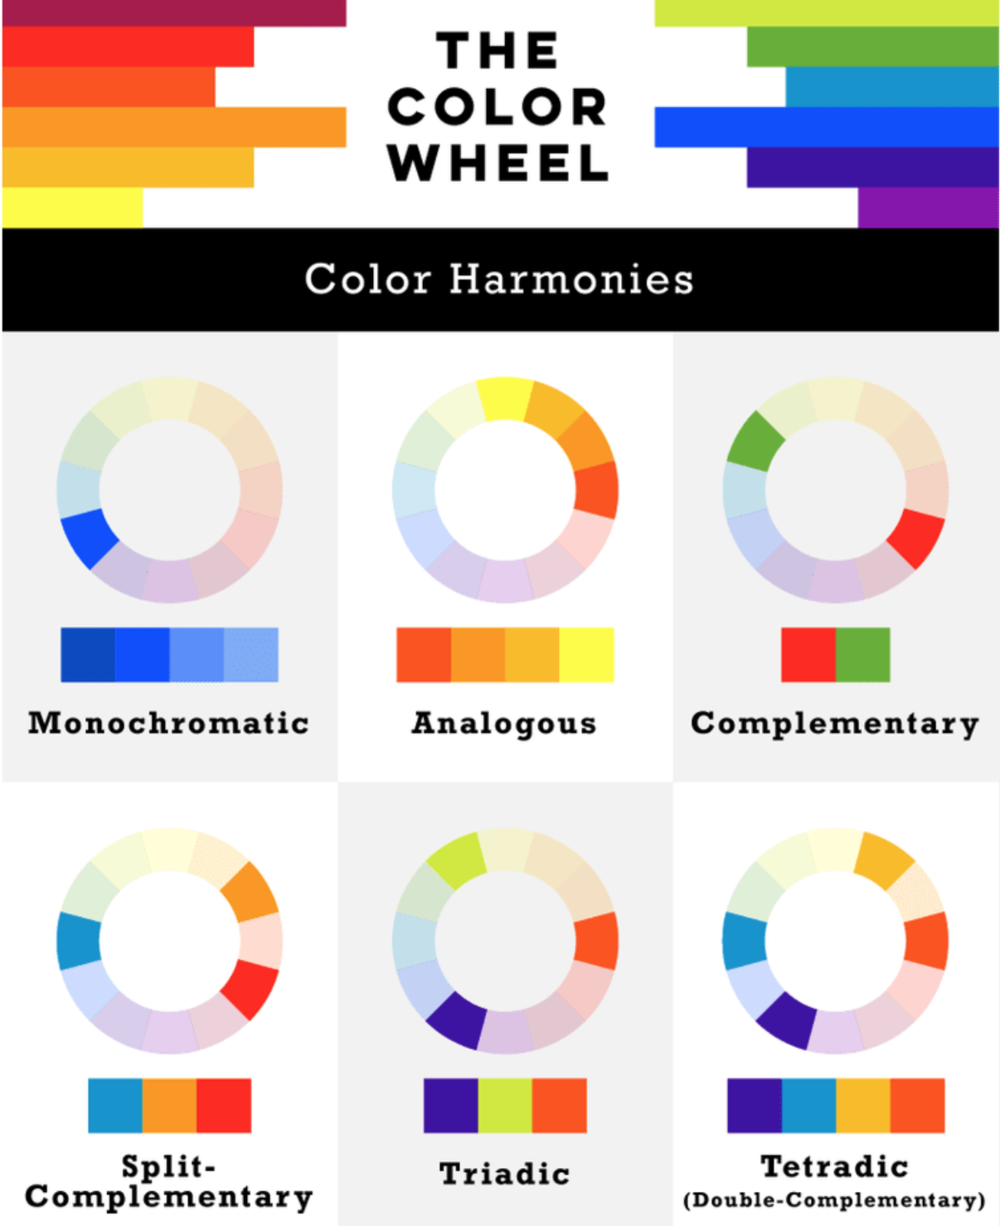 It's colorful - One of the biggest design hurdles for clients is choosing a palette for their site or brand. Color theory is deeply subjective AND more than a bit scientific. A well-chosen palette resonates in your nervous system and your heart. Canva.com's review of color covers all the bases.